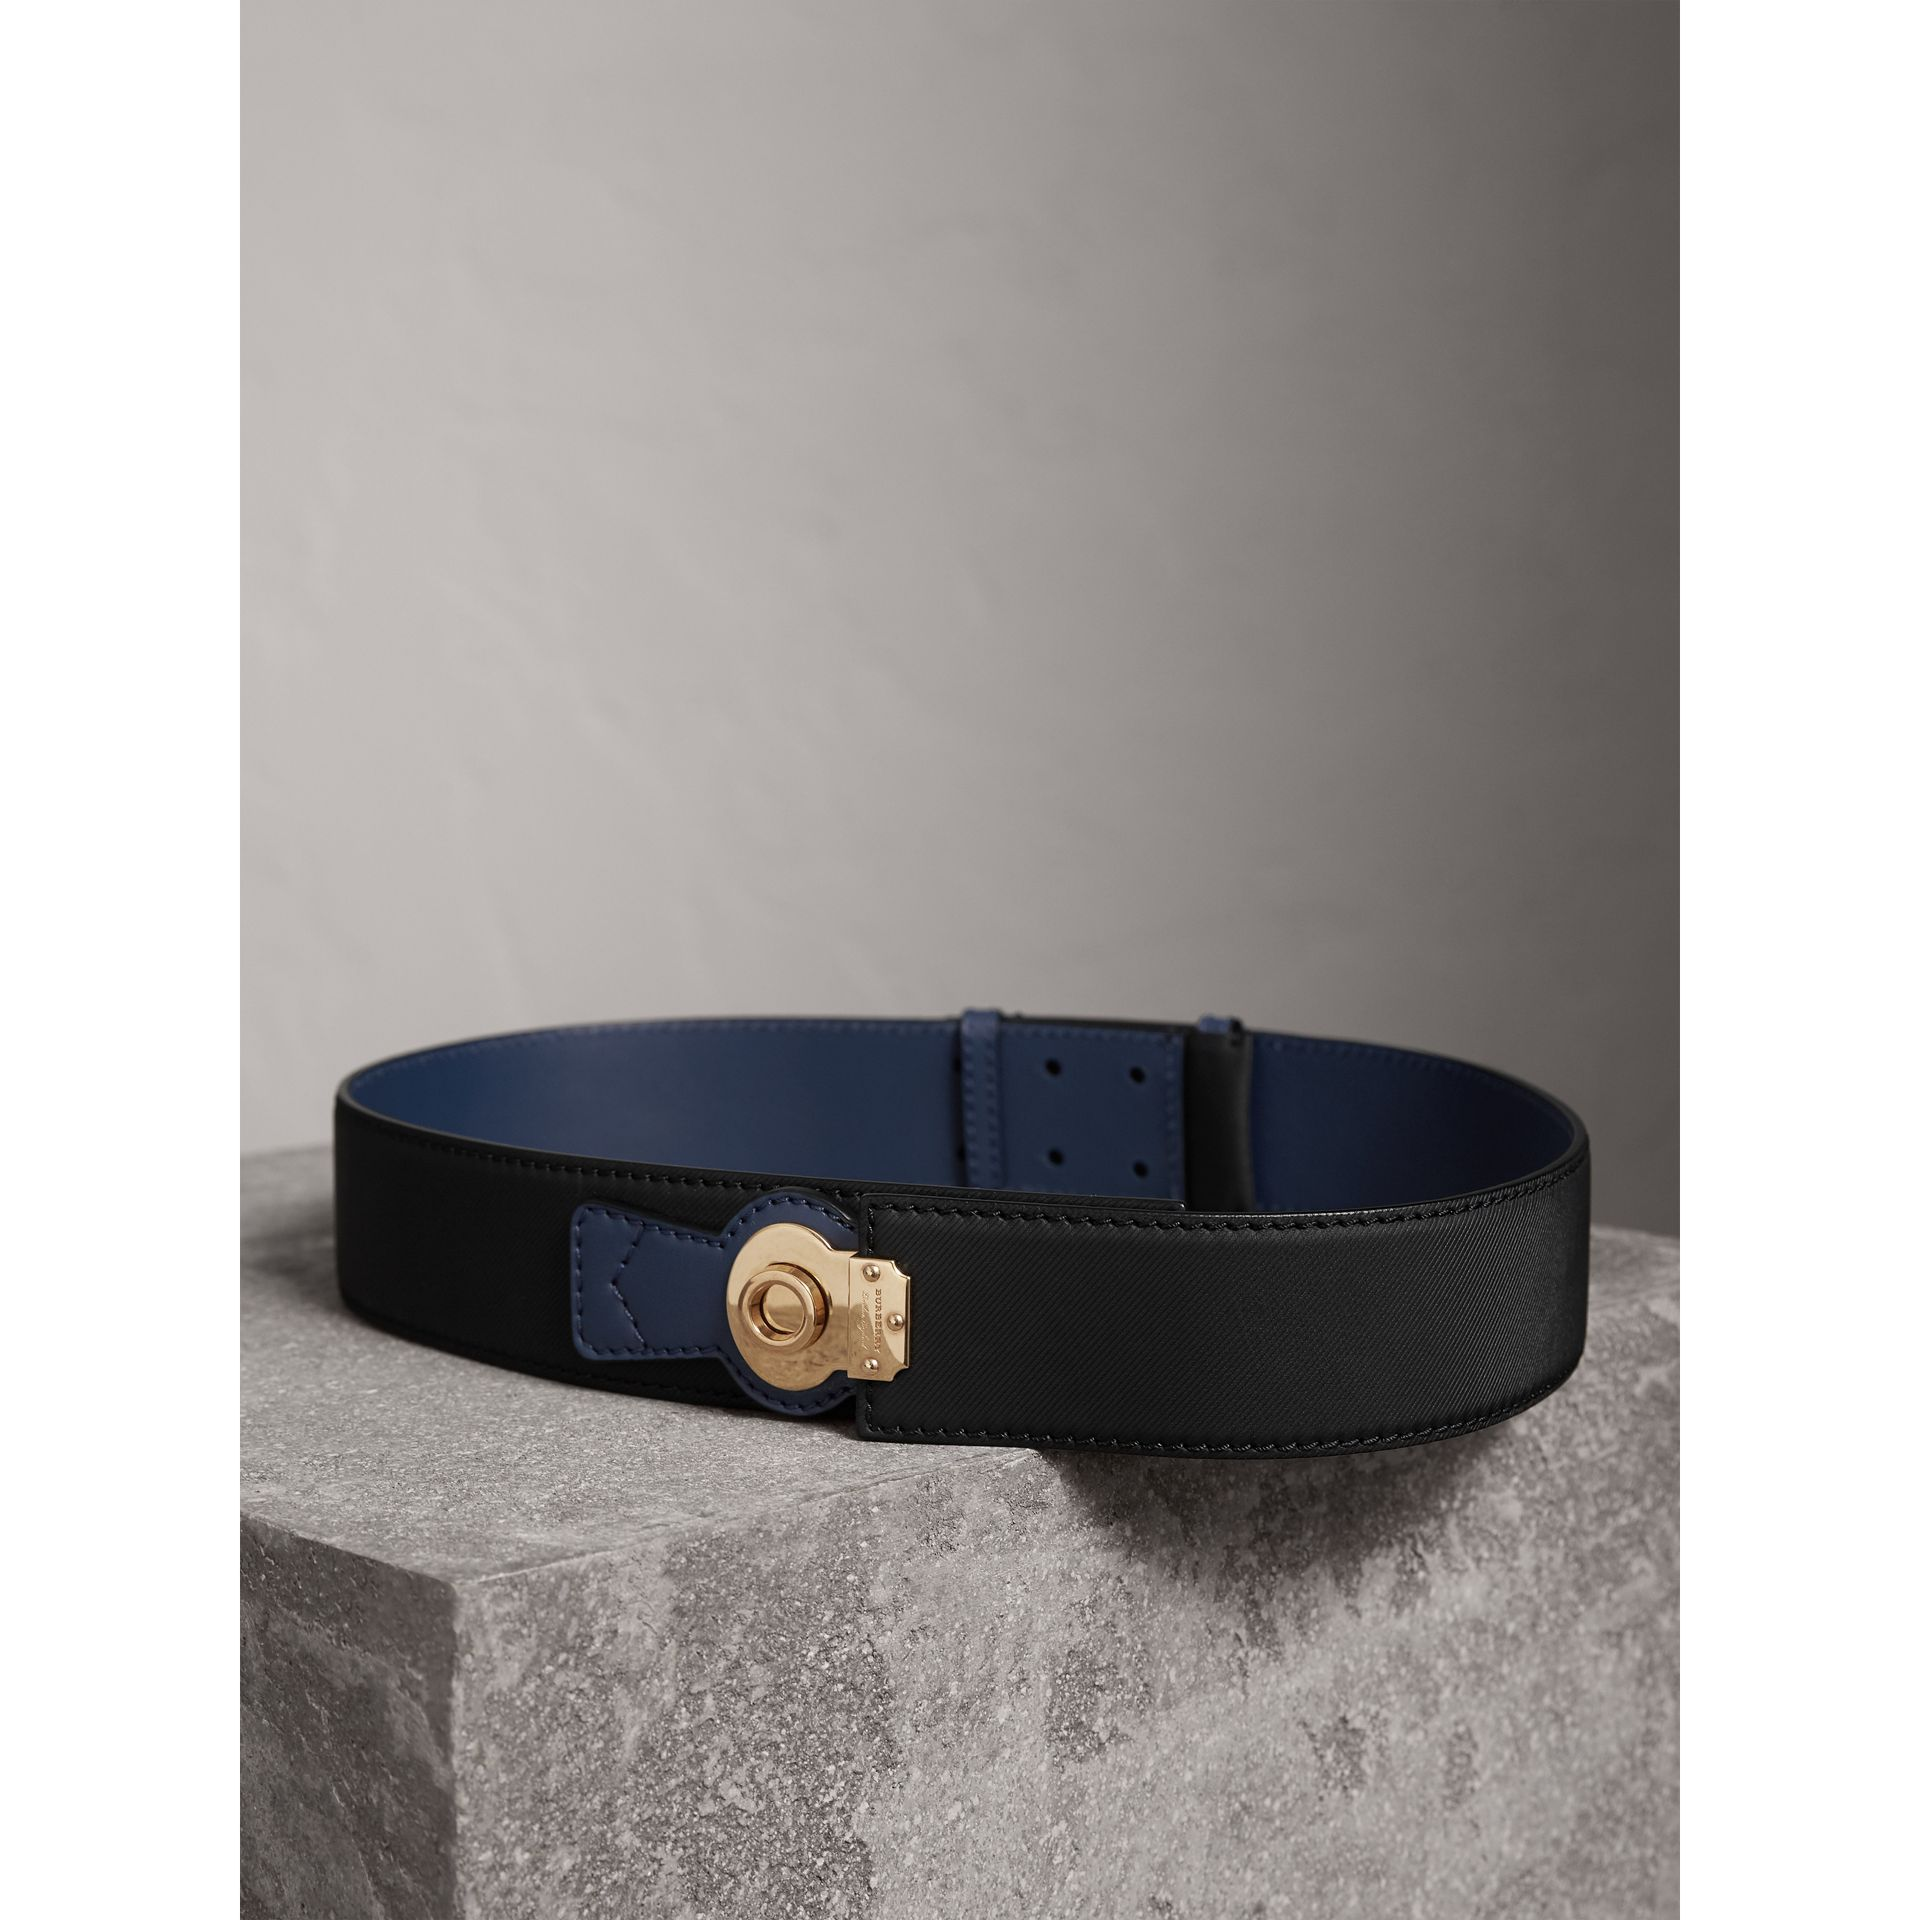 Two-tone Trench Leather Belt in Black / Ink Blue - Women | Burberry - gallery image 2